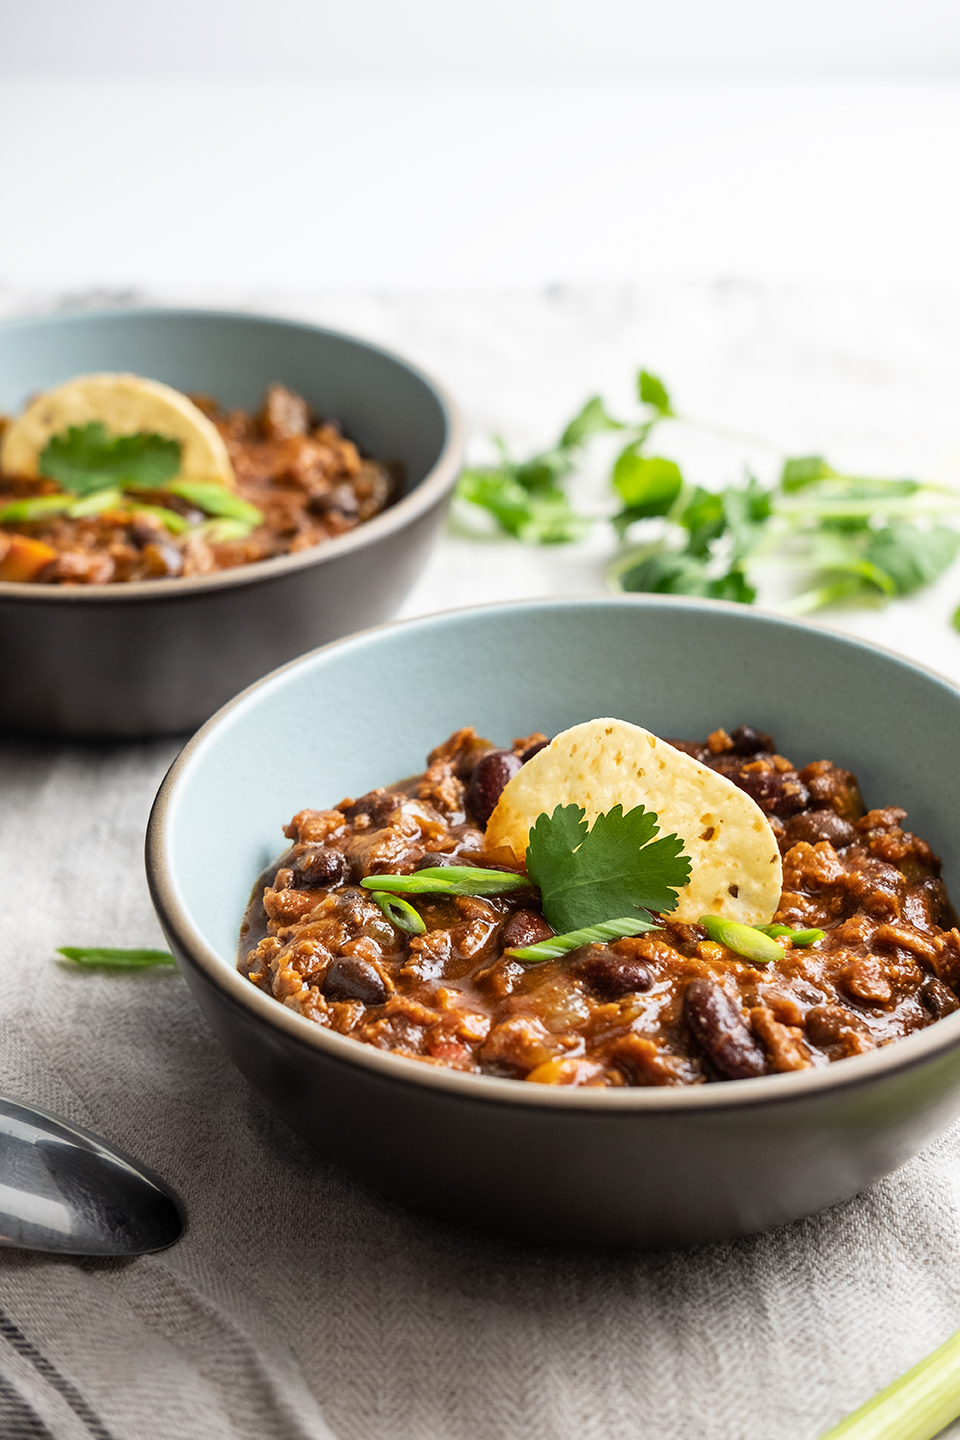 Vegetarian Chili with Beans and Veggie Crumbles